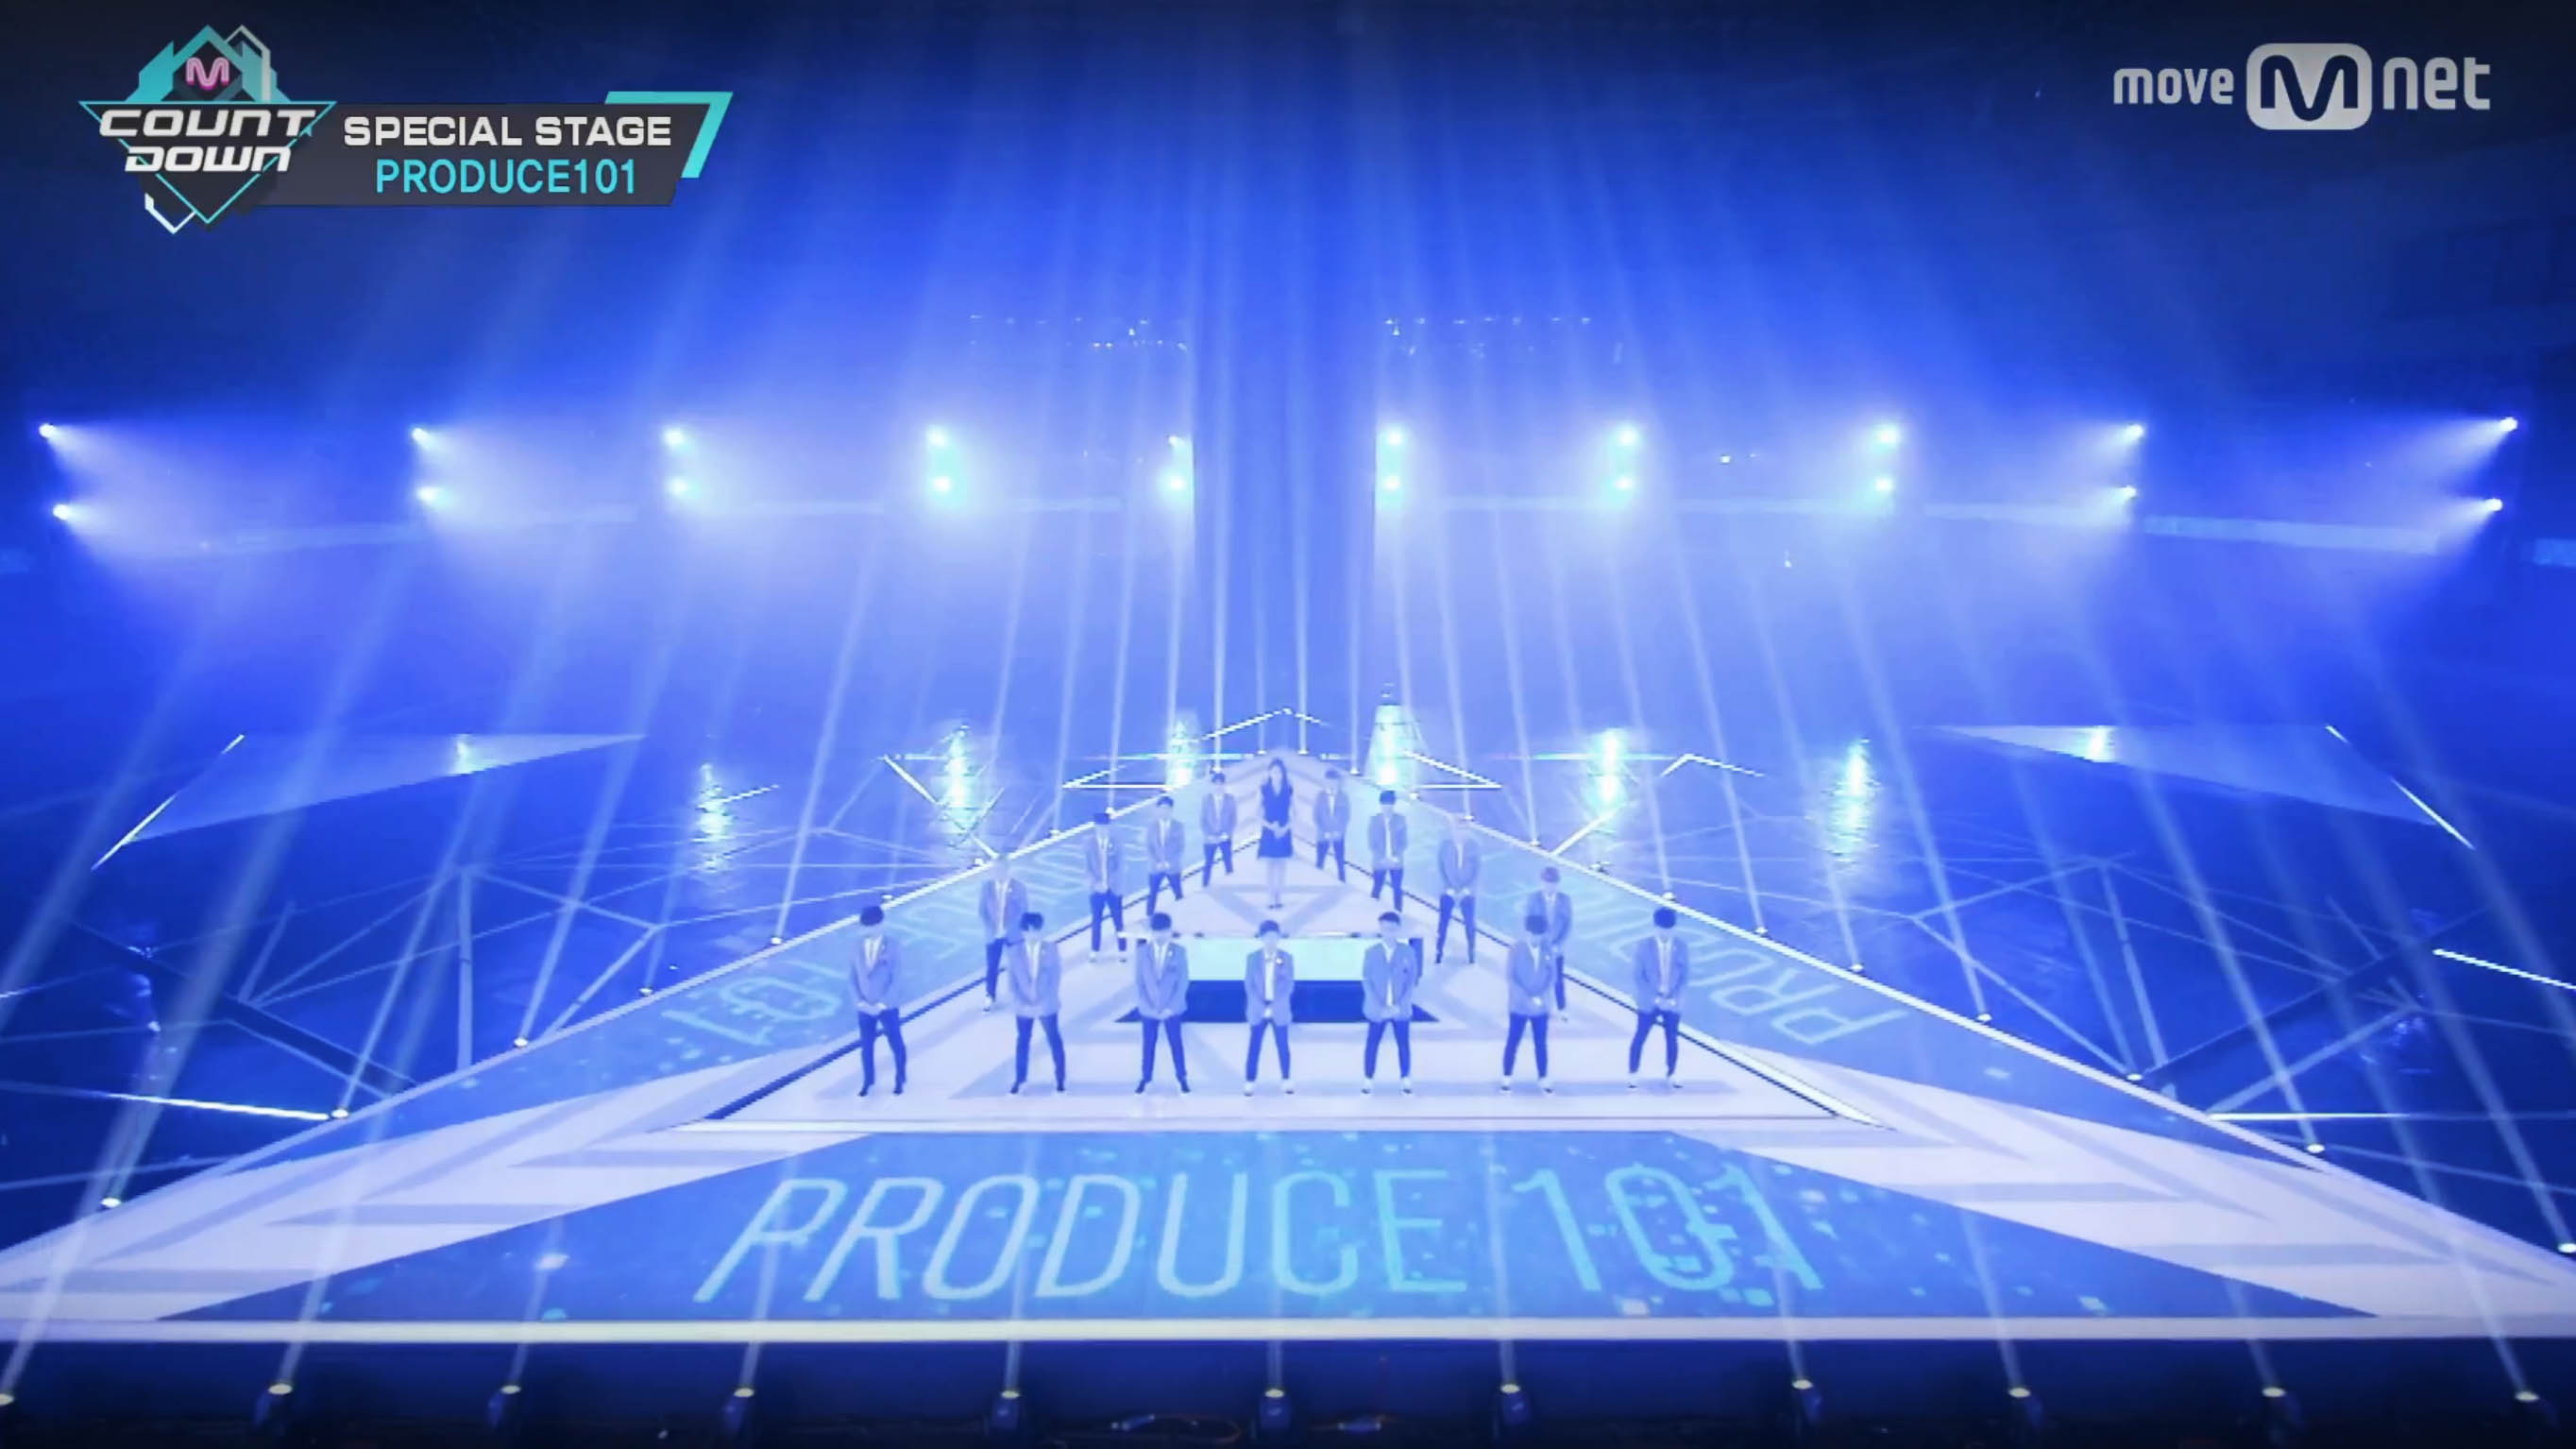 """Contestant Reportedly Injured During Filming For """"Produce 101"""" Season 2"""